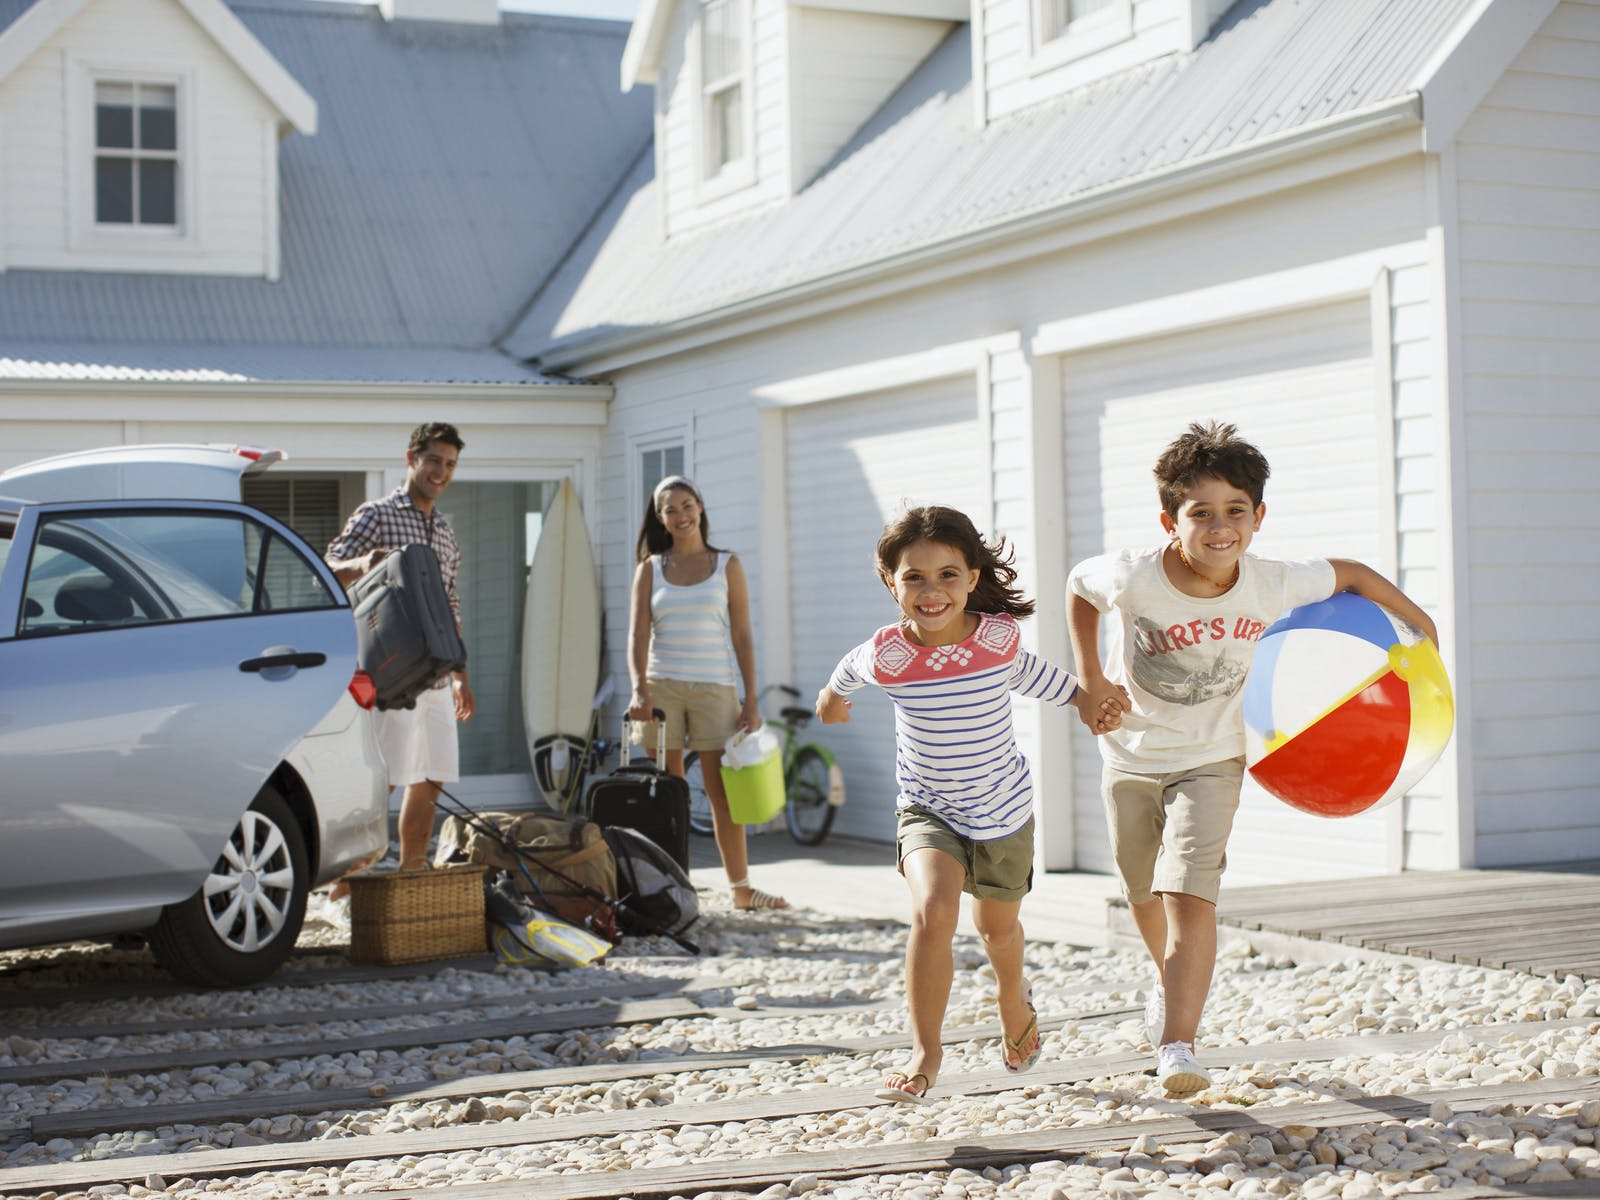 Family loading up car for the beach in vacation rental driveway